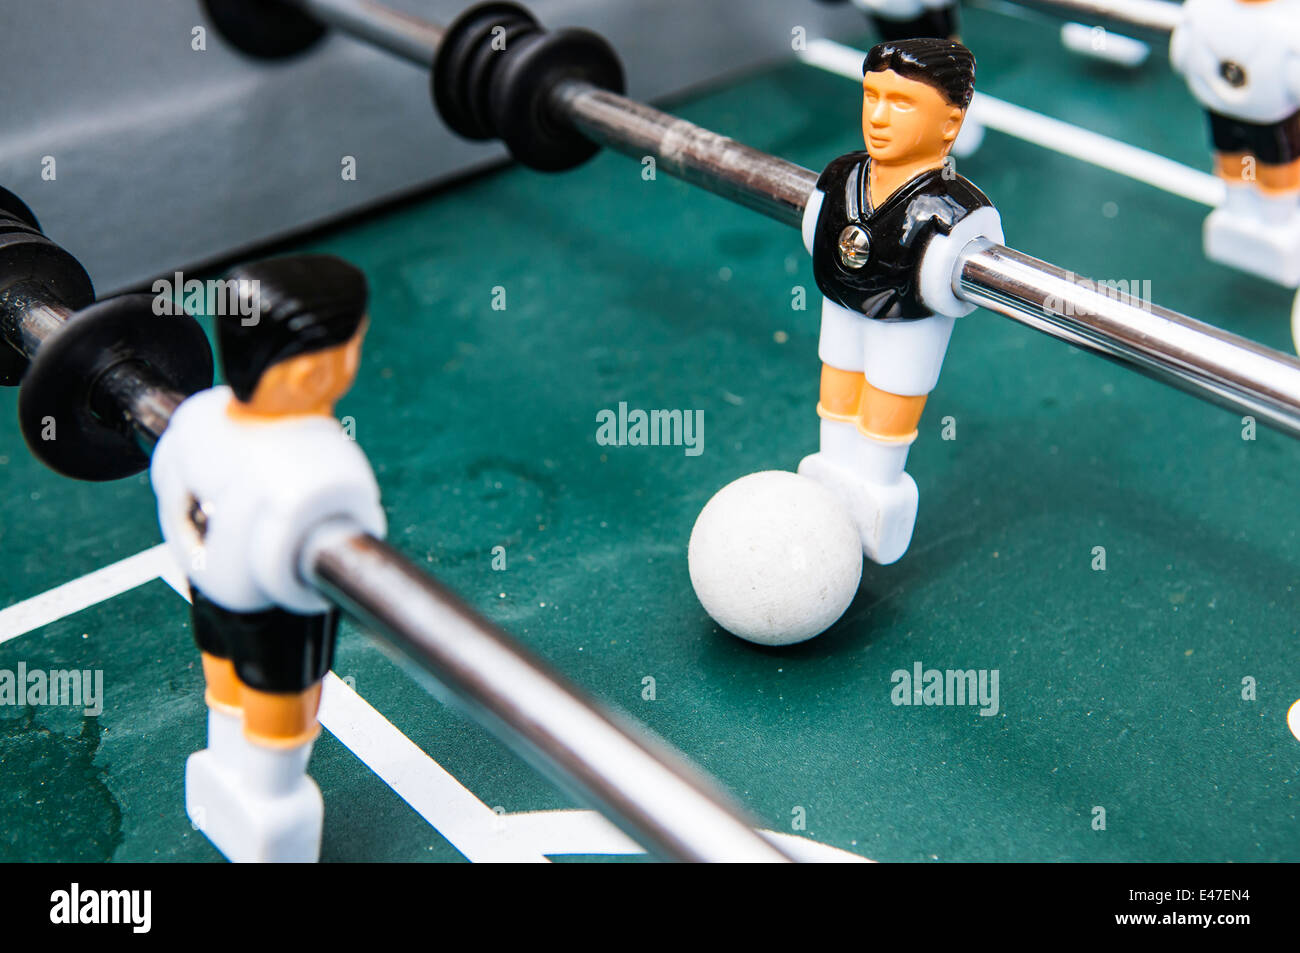 Table Football with ball - Stock Image